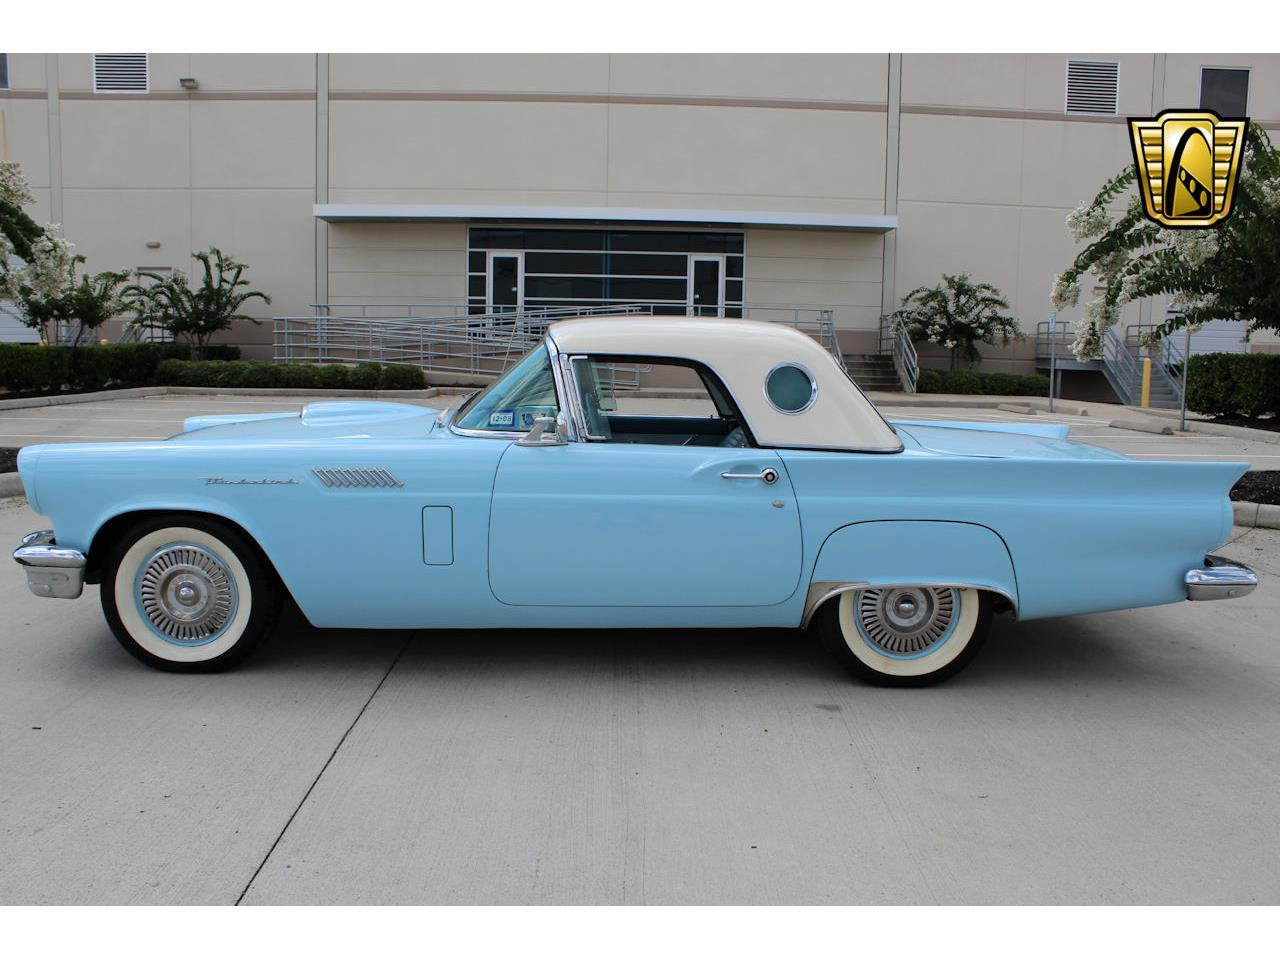 Classic Cars For Sale Houston Area: 1957 Ford Thunderbird For Sale